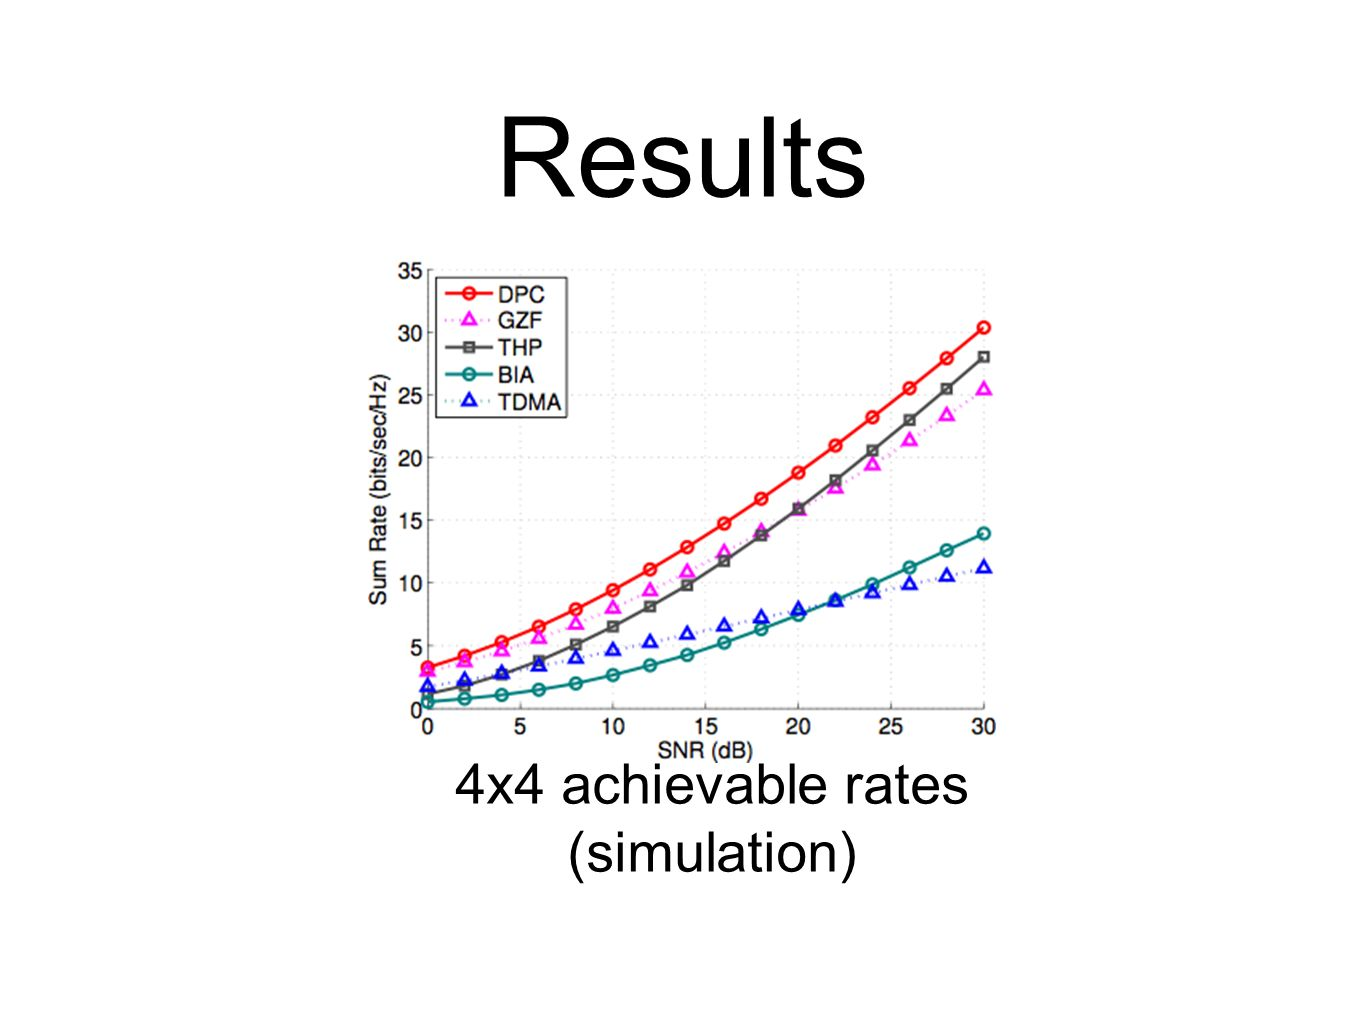 4x4 achievable rates (simulation)